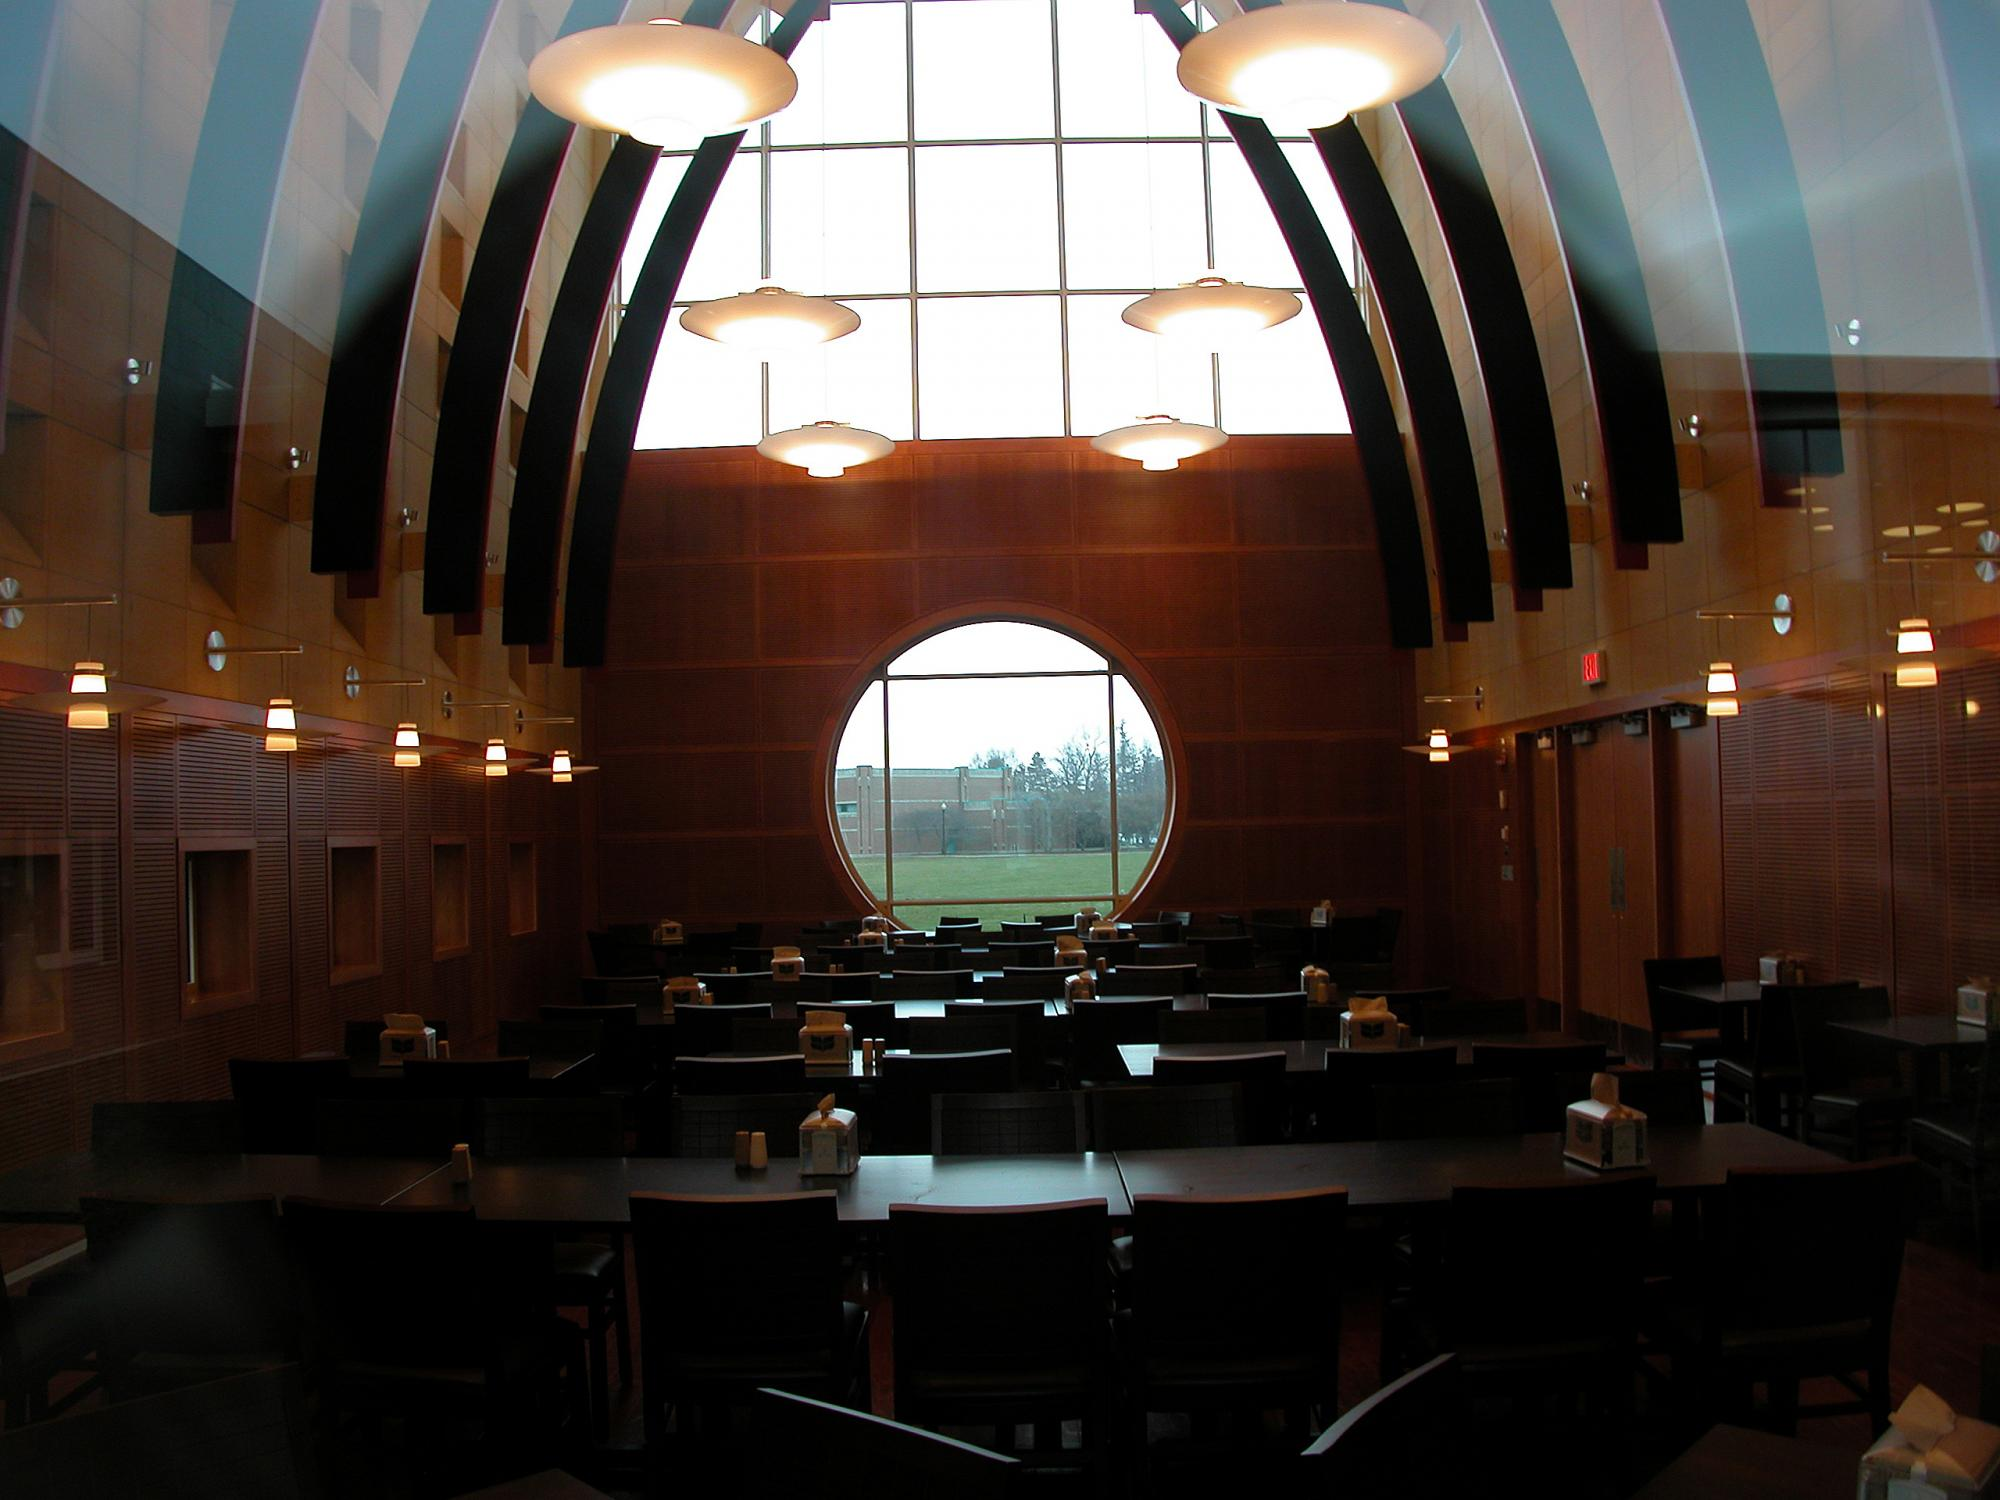 Whale Room in the Marketplace campus dining facility